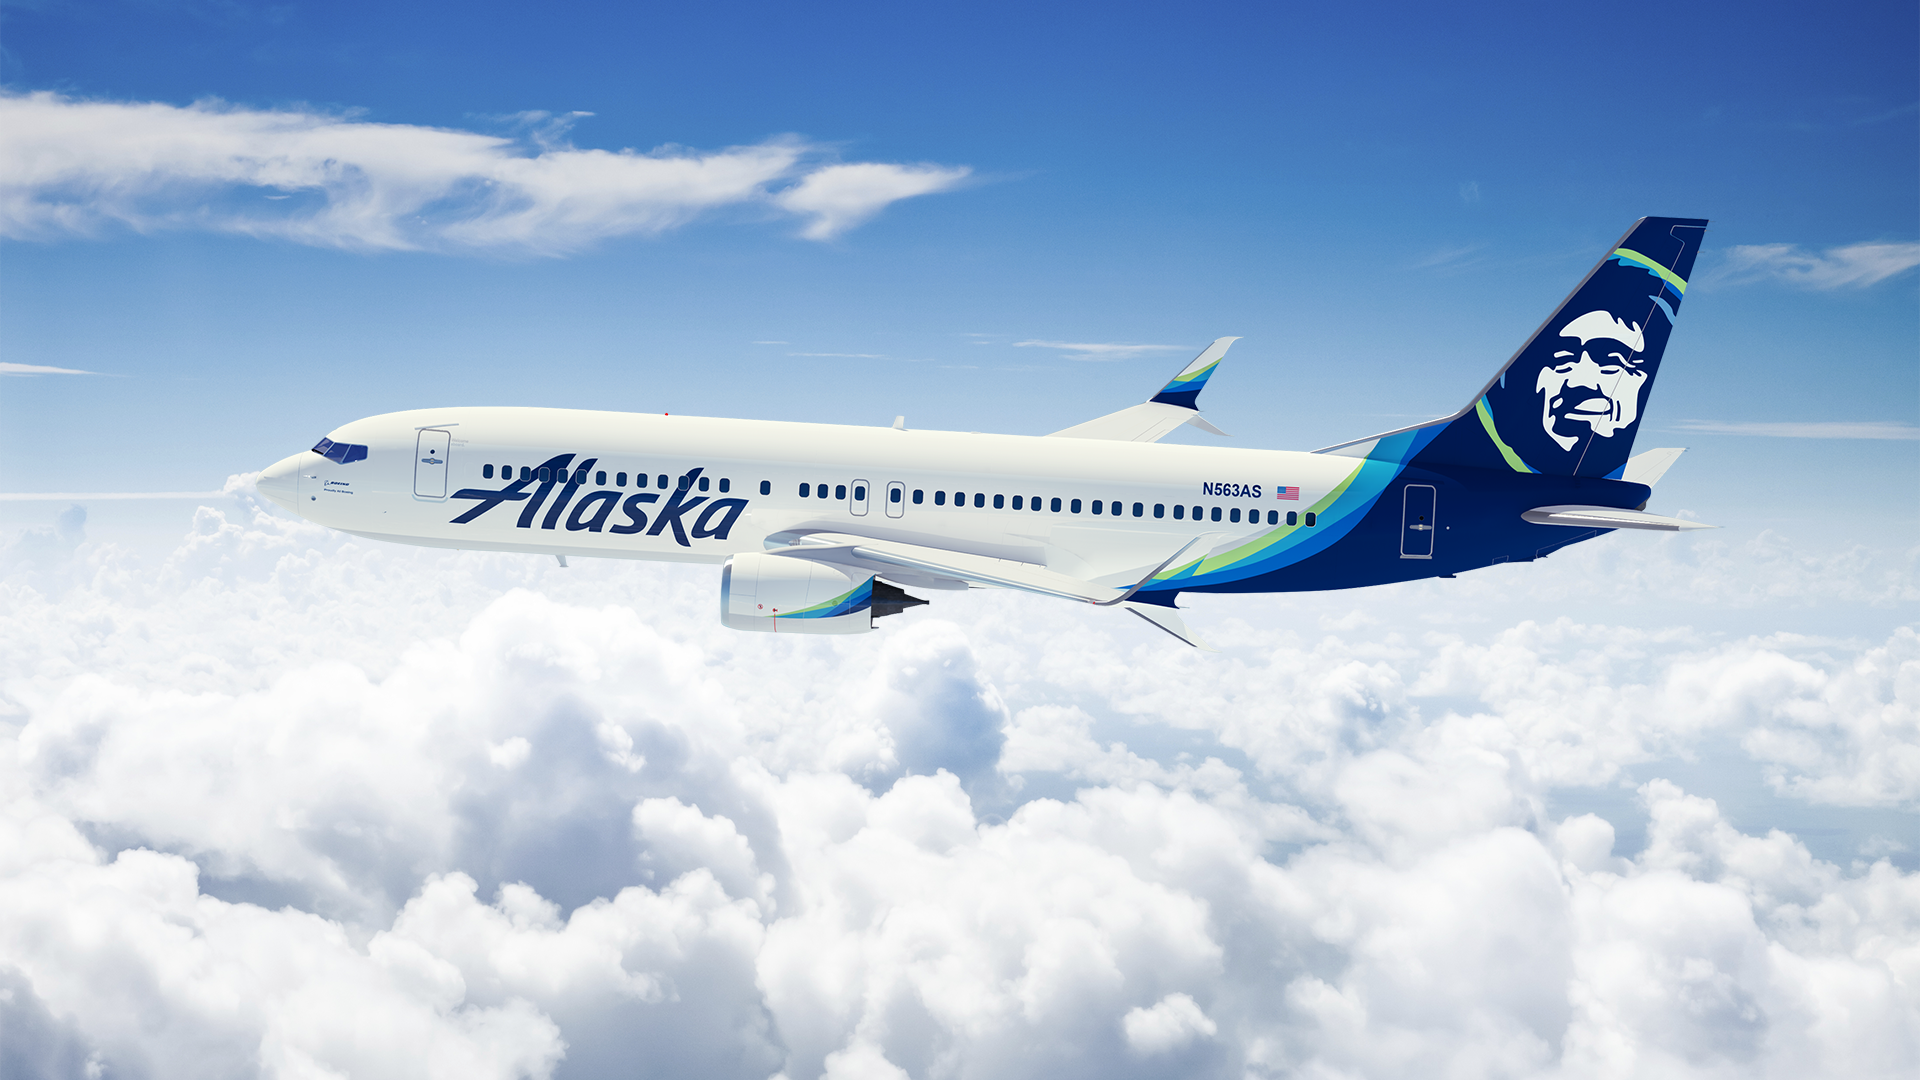 If Alaska Airlines Wants to Keep Me as an Elite Status Member They Need to Join an Alliance